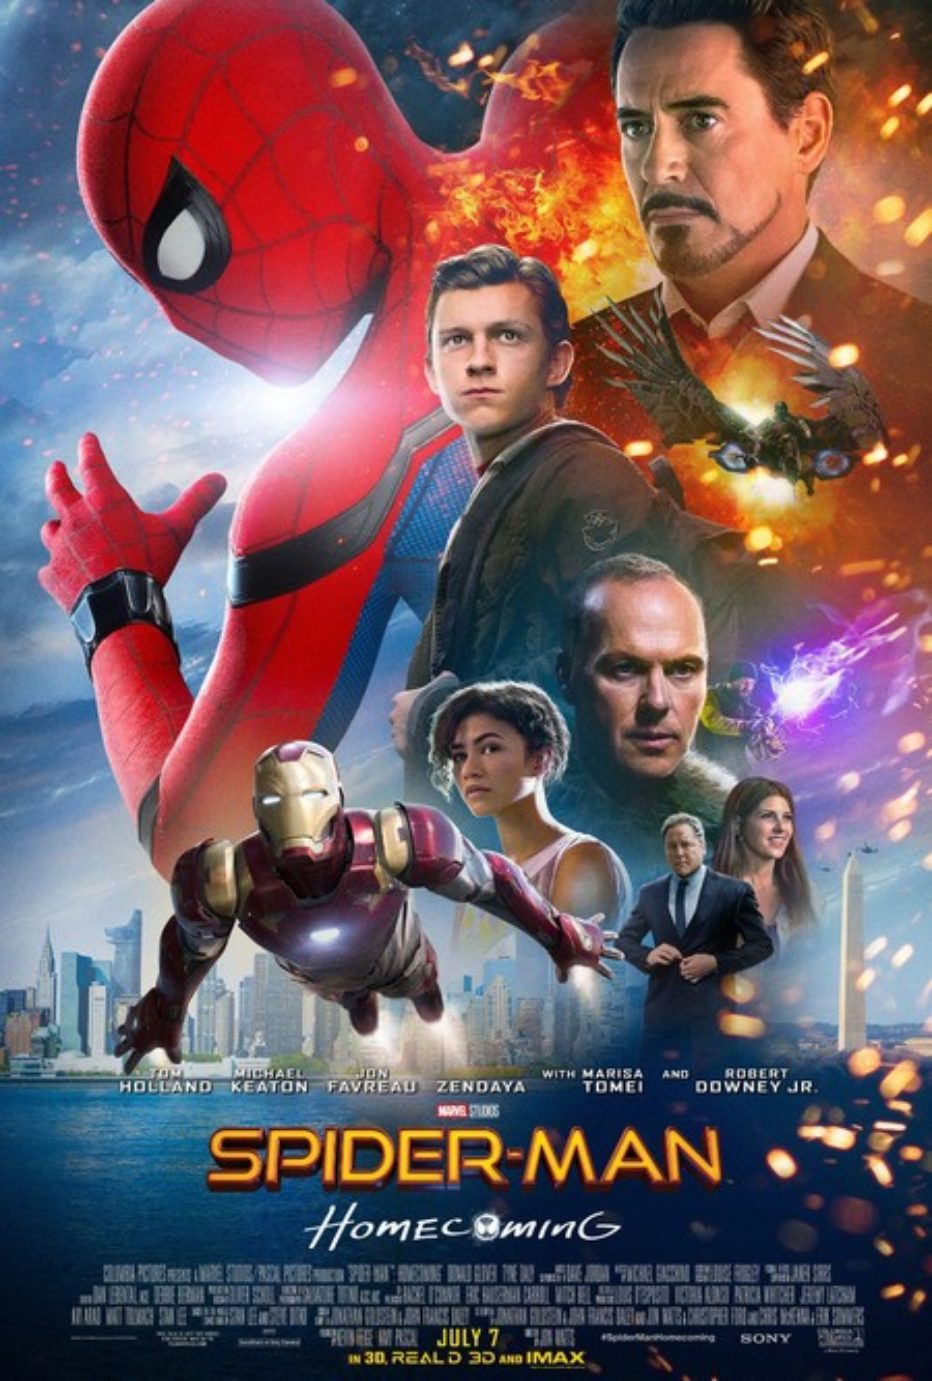 Nuevo trailer de Spiderman: Homecoming en español